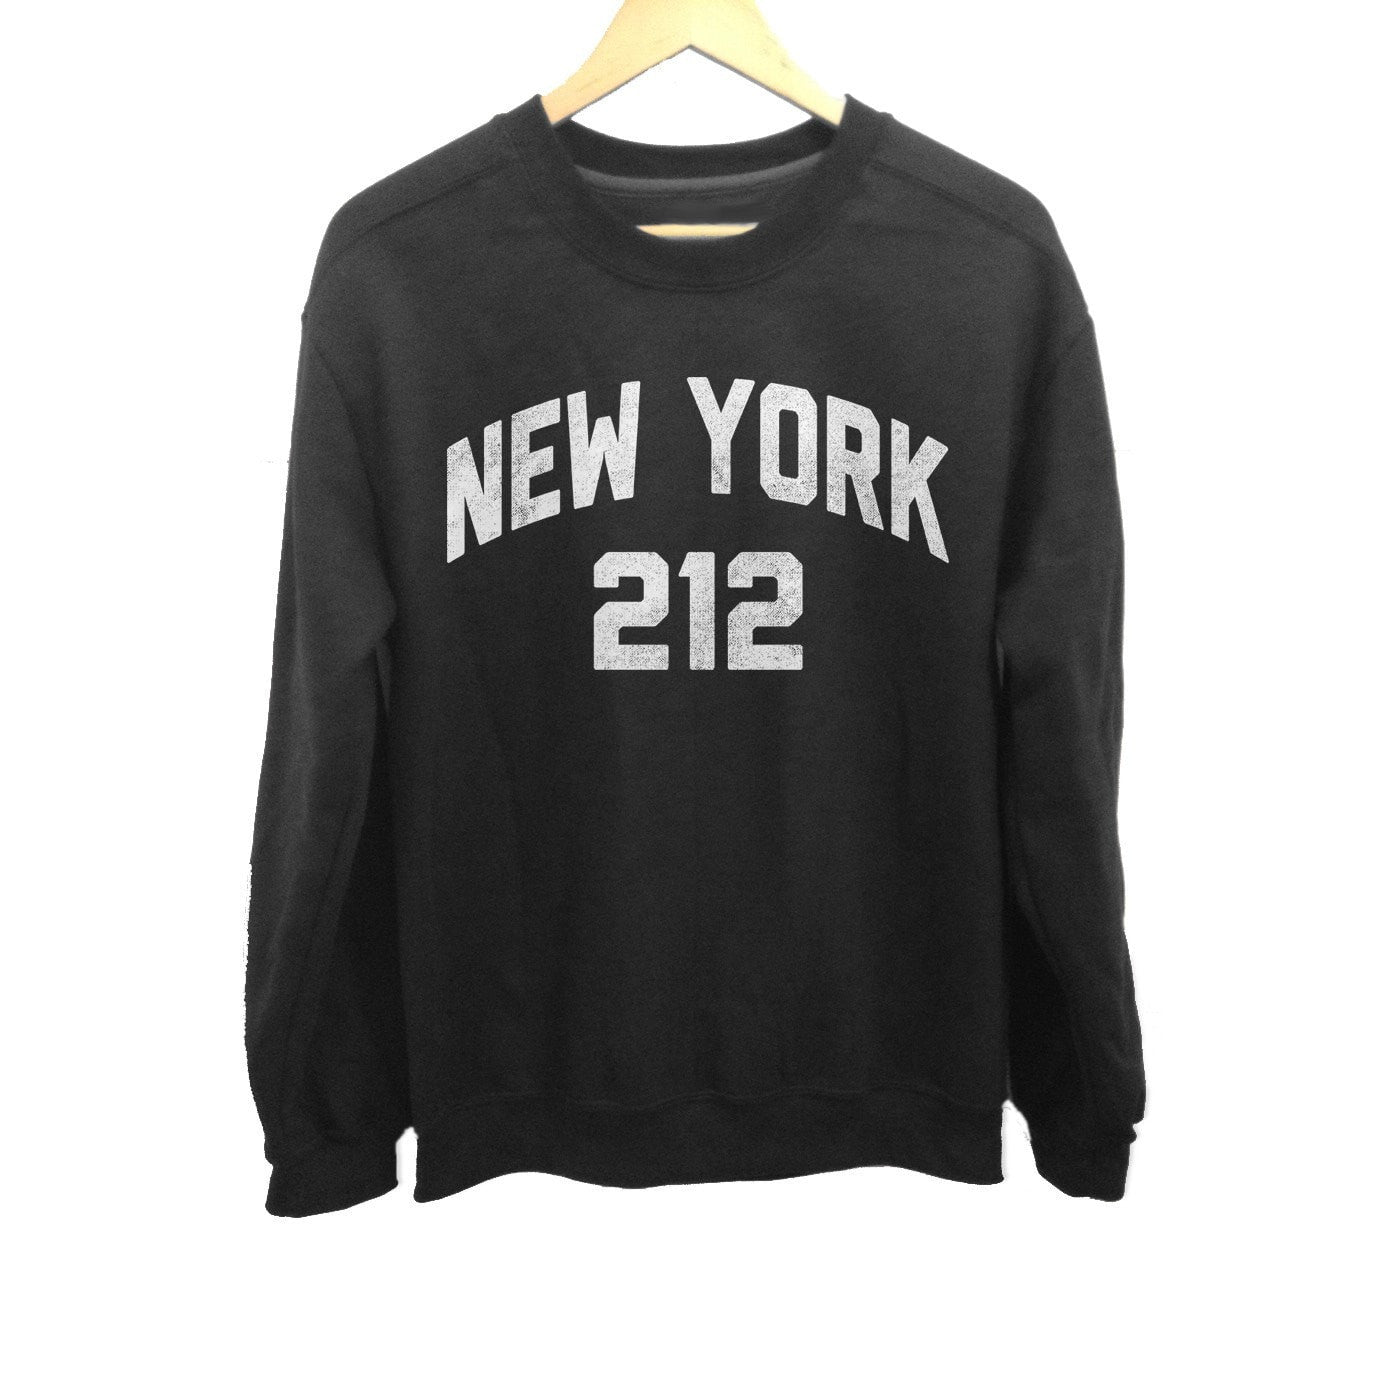 Unisex New York City 212 Area Code Sweatshirt